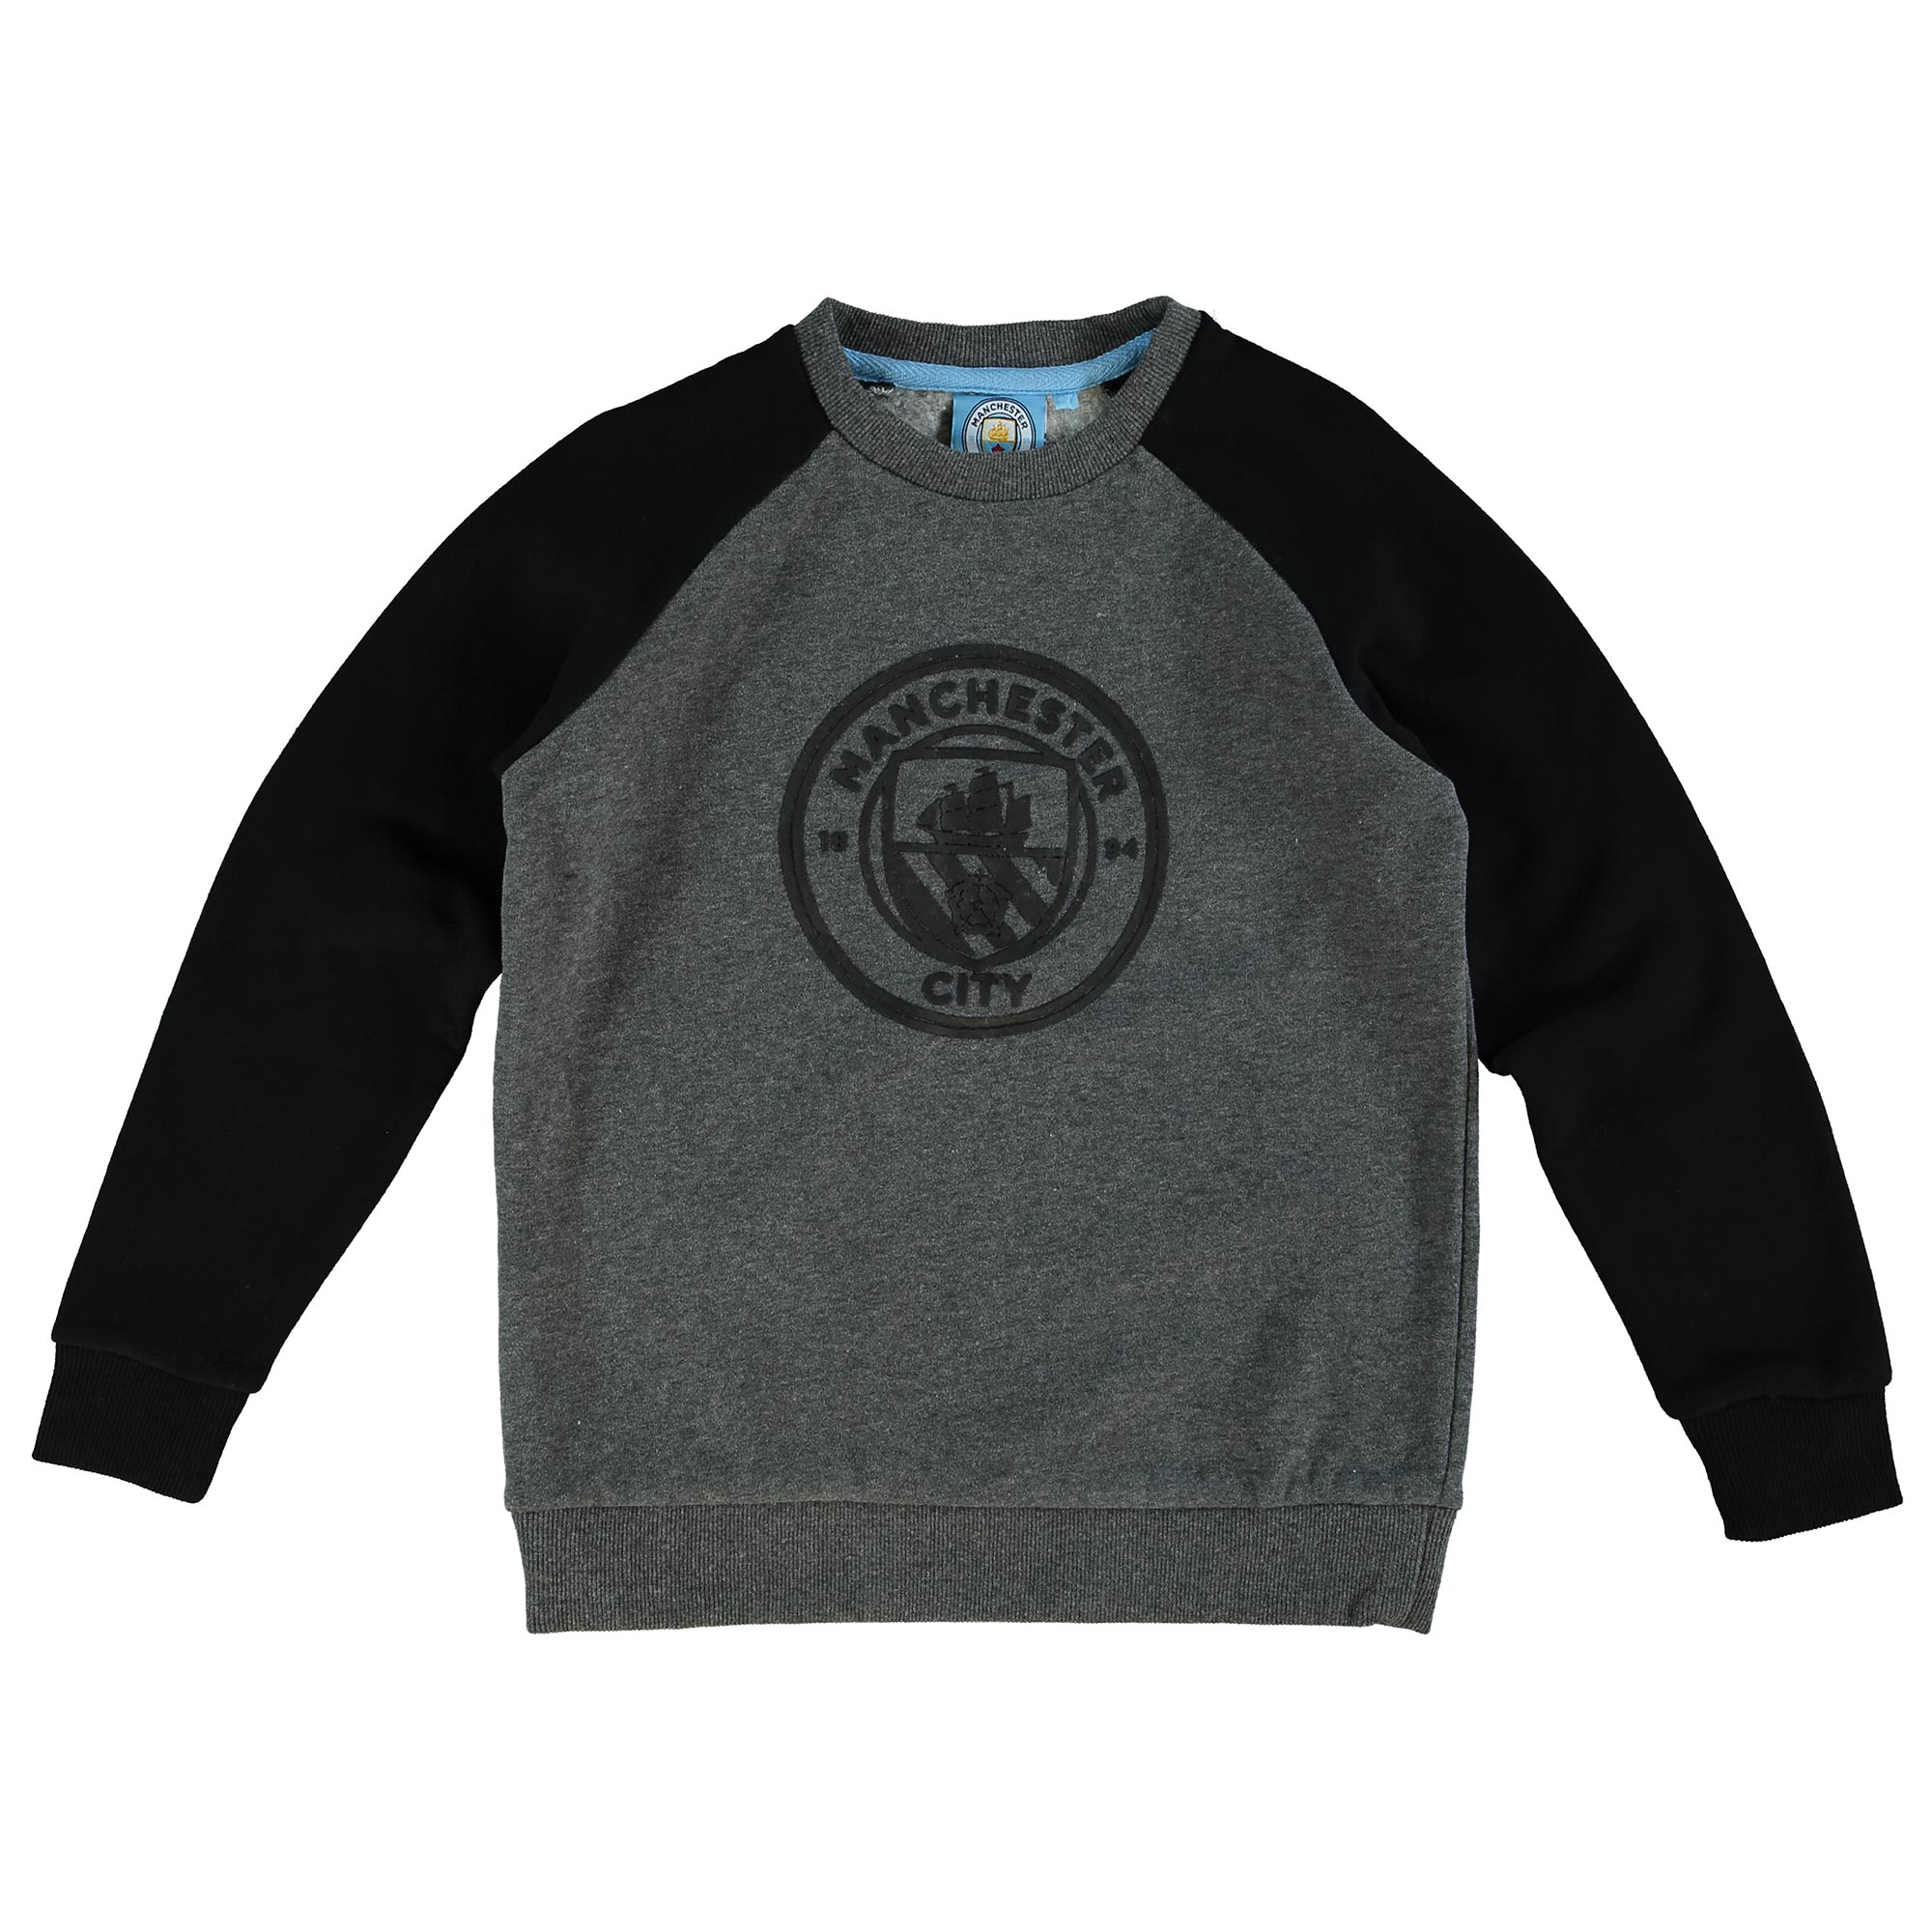 Manchester City Classic Raglan Sweatshirt - Grey/Black - Junior